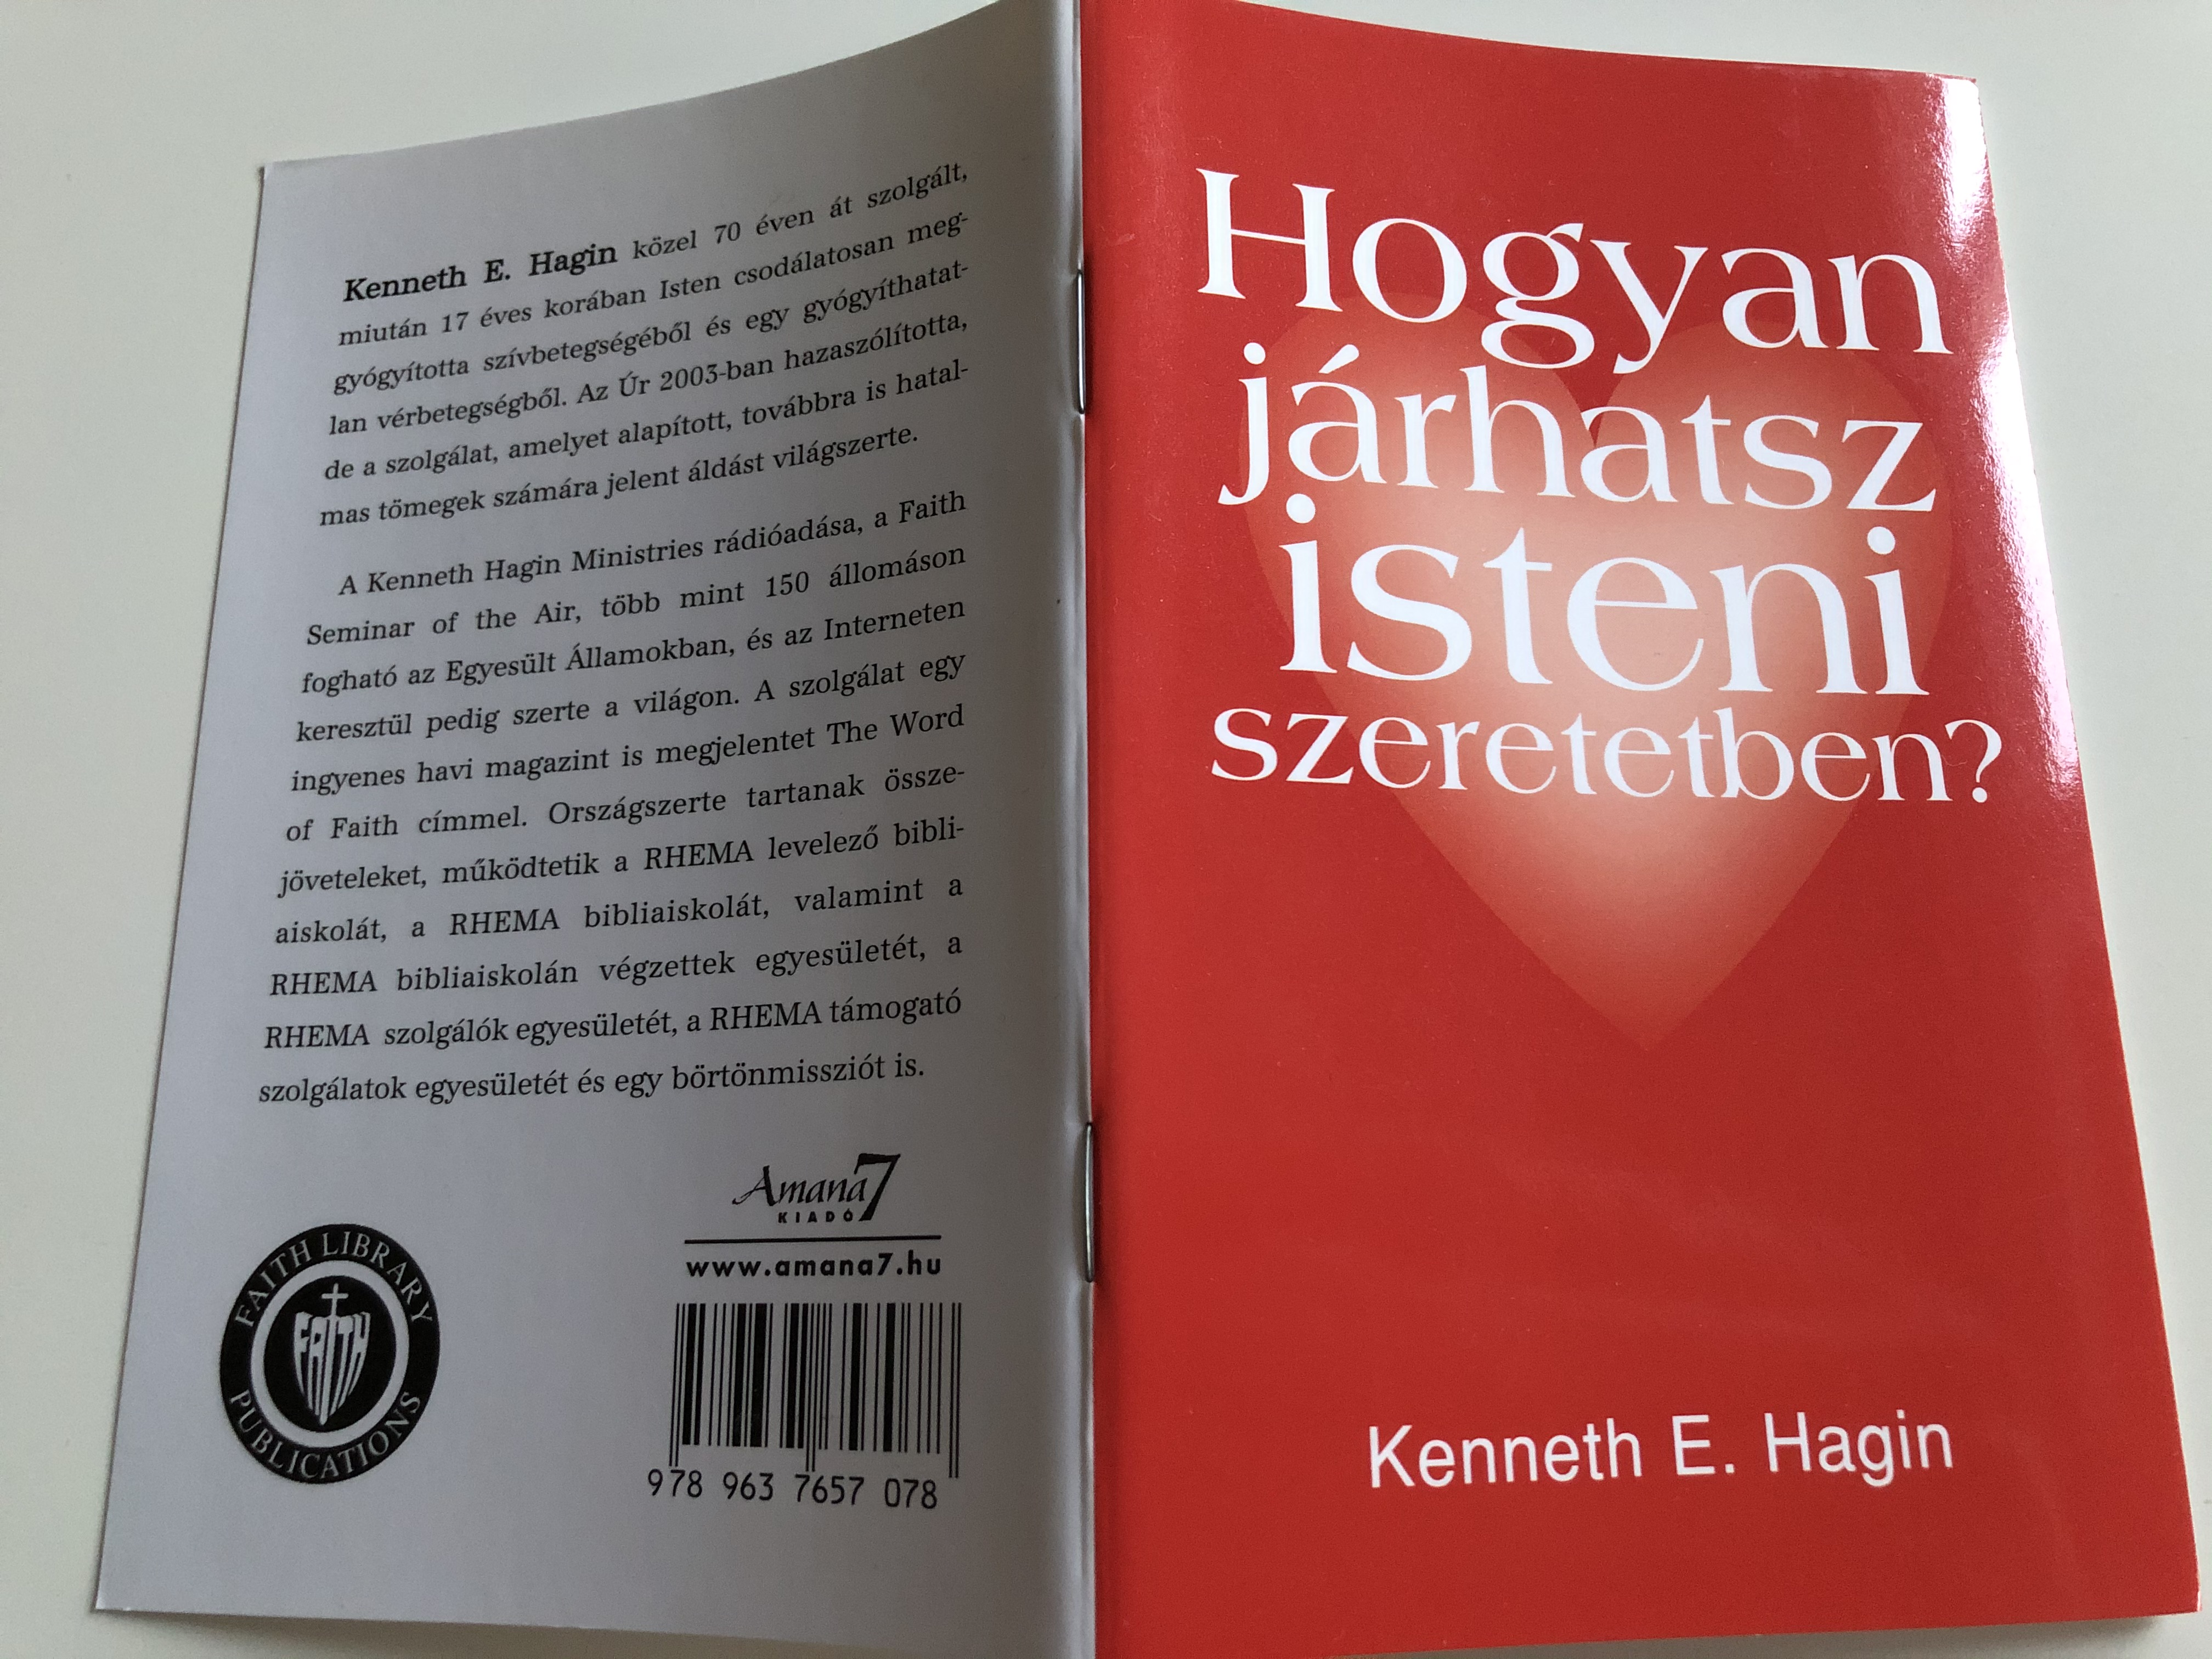 hogyan-j-rhatsz-isteni-szeretetben-by-kenneth-e.-hagin-hungarian-edition-of-how-to-walk-in-love-6-.jpg